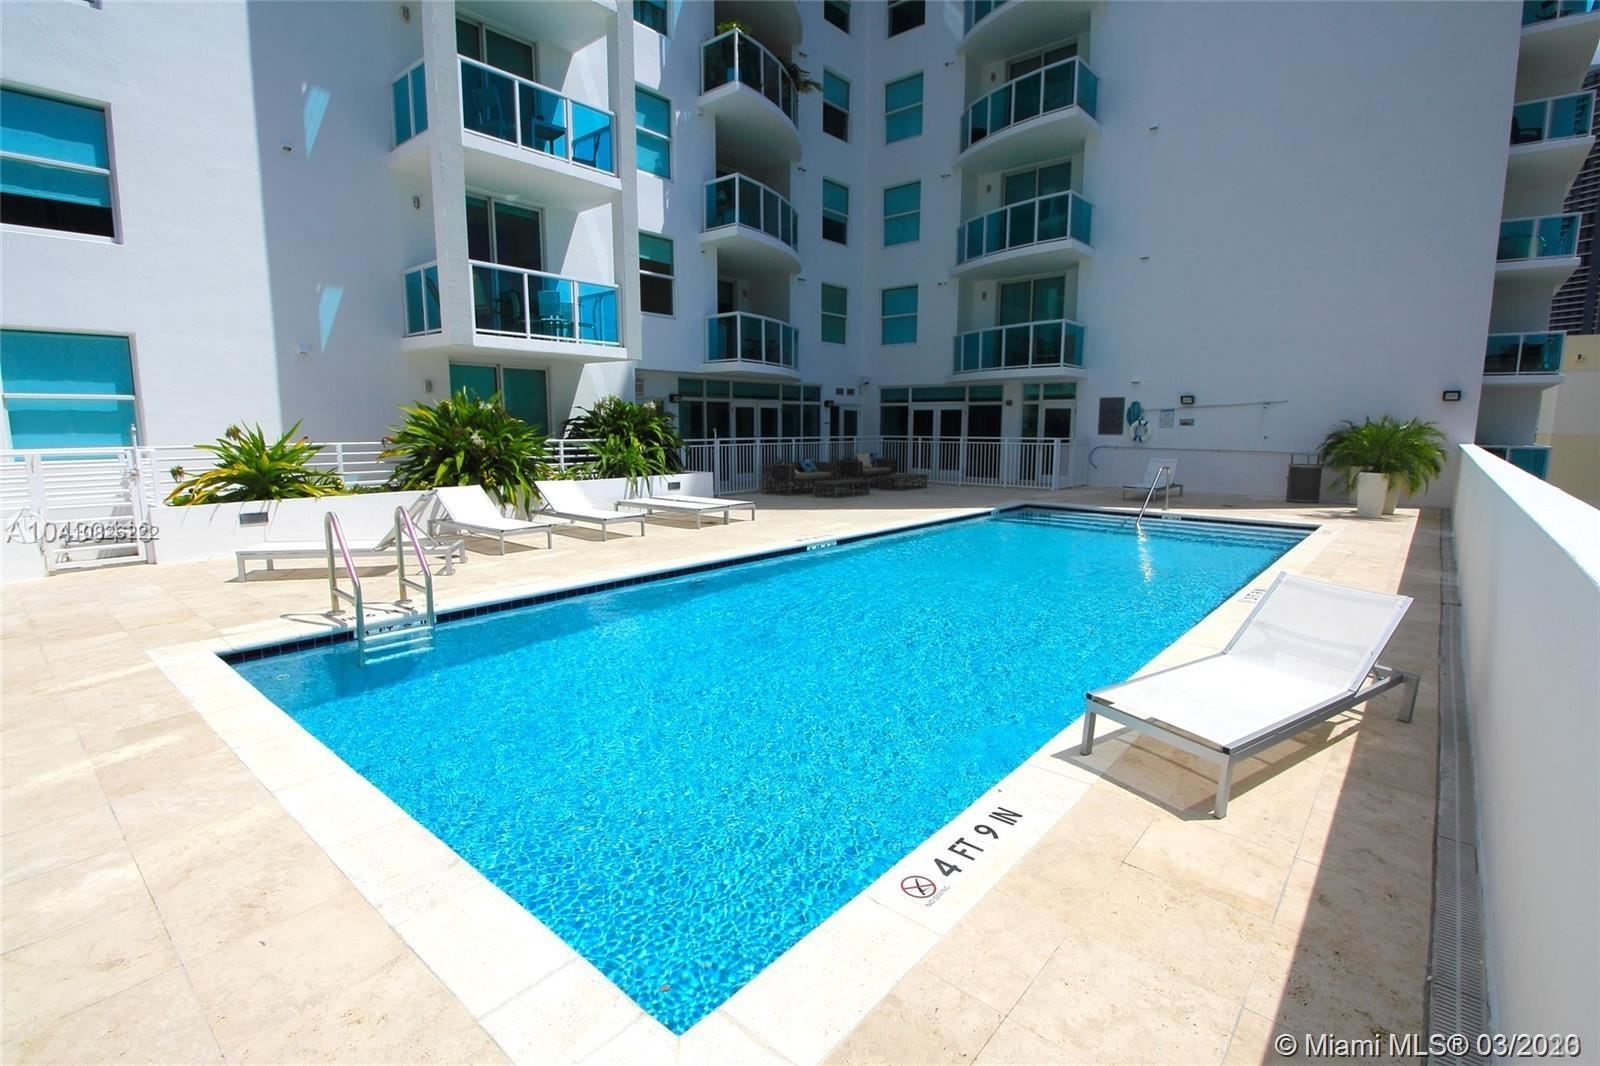 1723 SW 2nd Ave #810, Miami, FL 33129 - #: A10826222